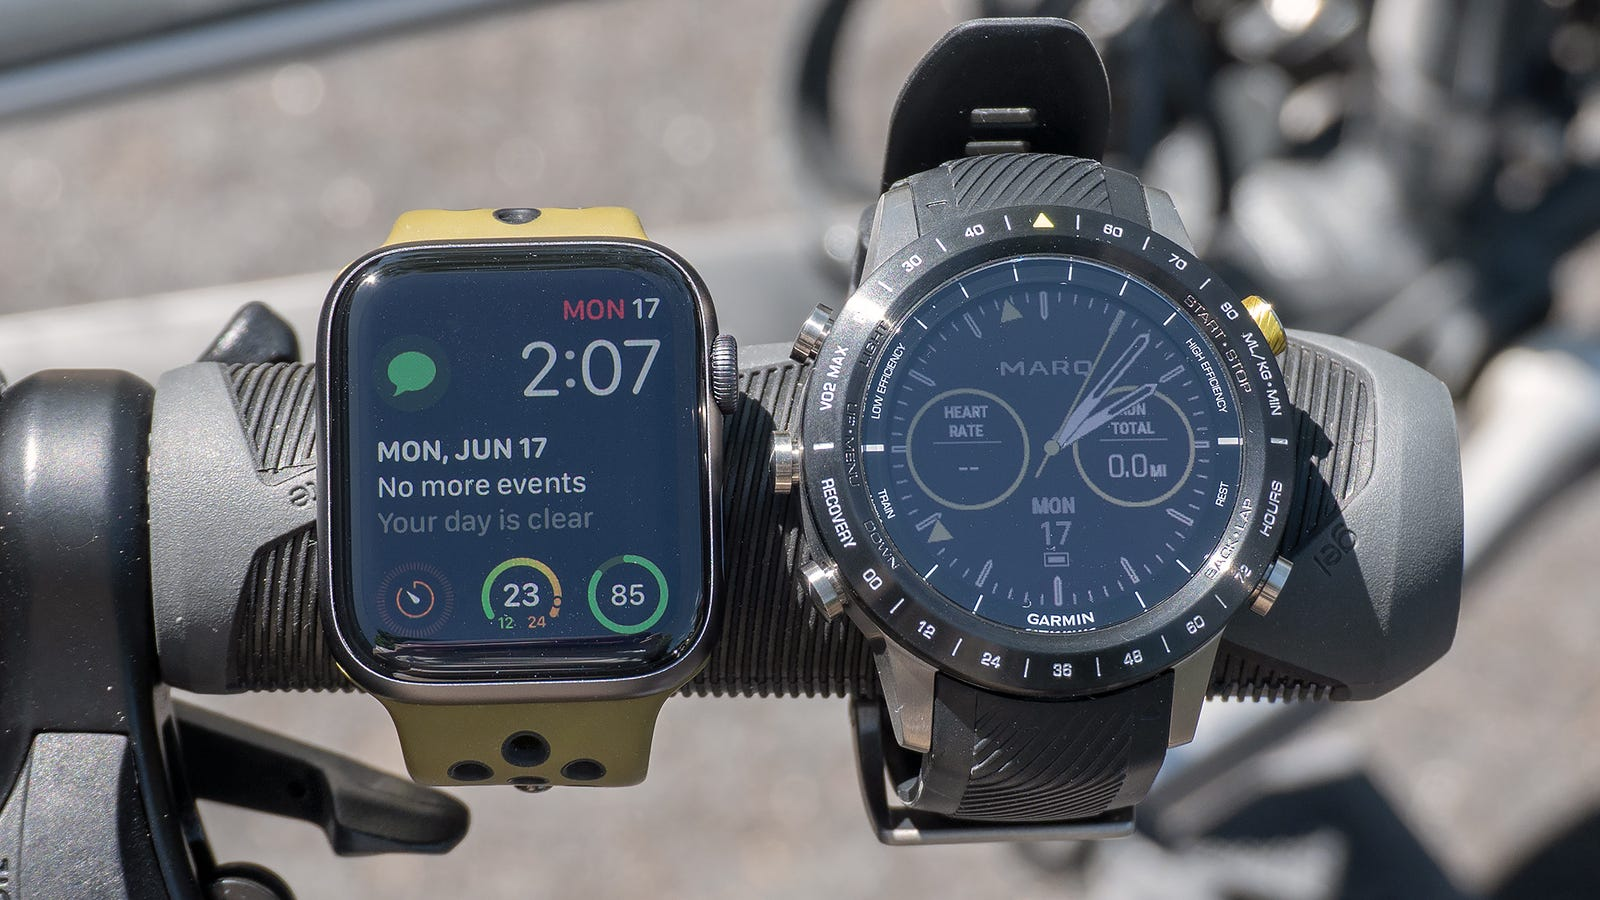 In direct sunlight, the MARQ Athlete's reflective LCD display is as bright and crisp as the Apple Watch's OLED.